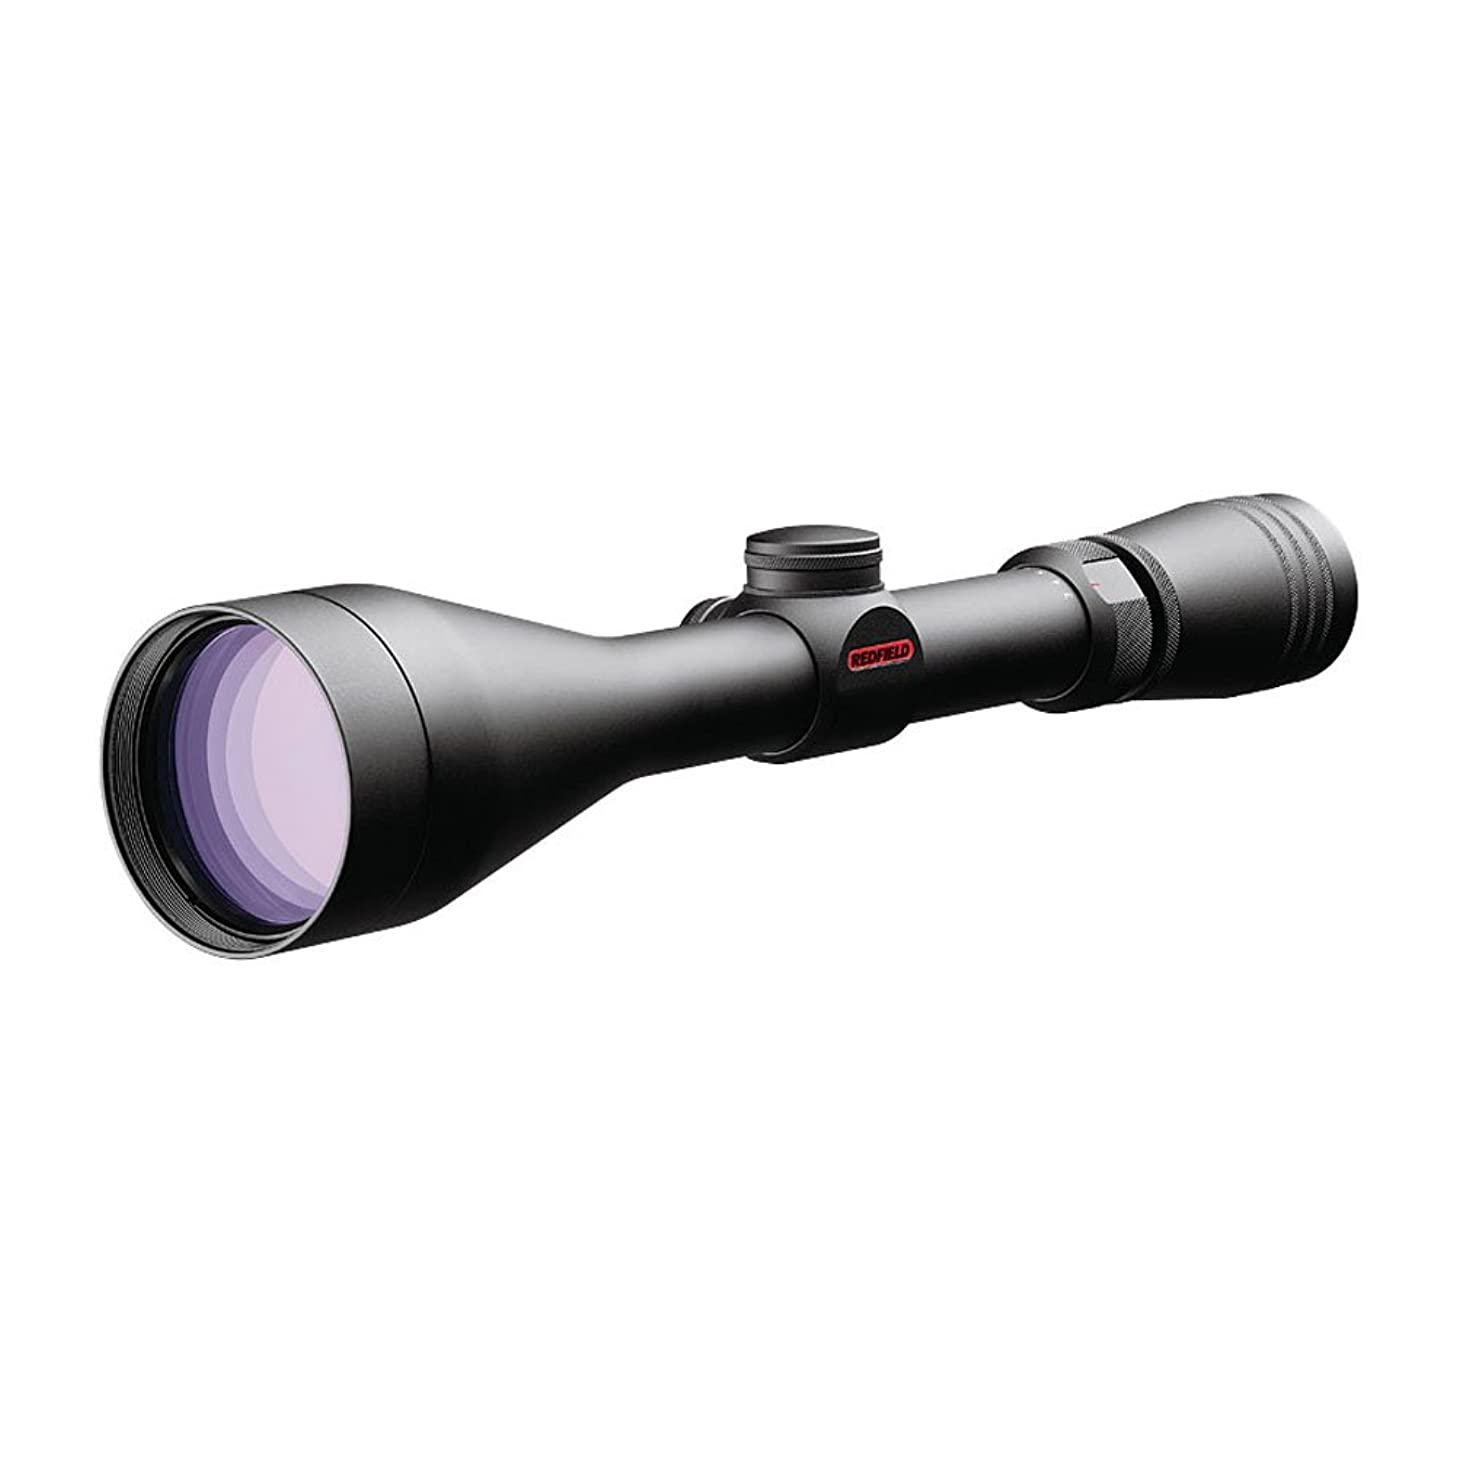 Redfield Revolution 3-9x50mm Riflescope with Accu-Range Reticle, Matte Black